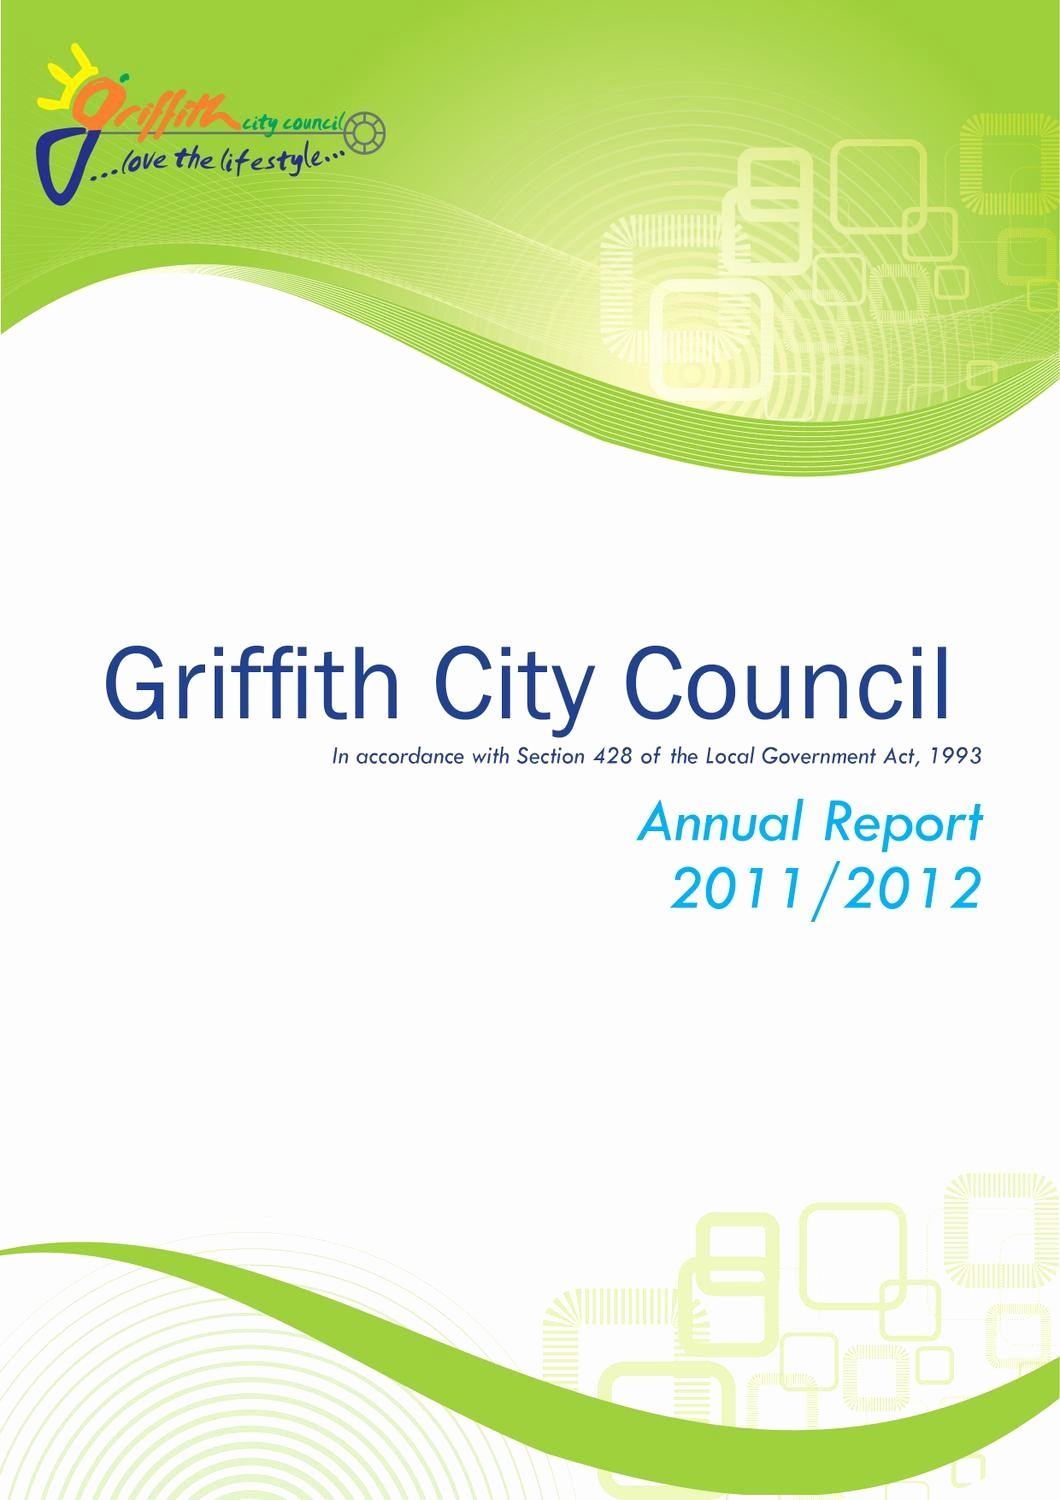 Portfolio Kindergarten Muster Genial 2011 12 Annual Report by Griffith City Council issuu